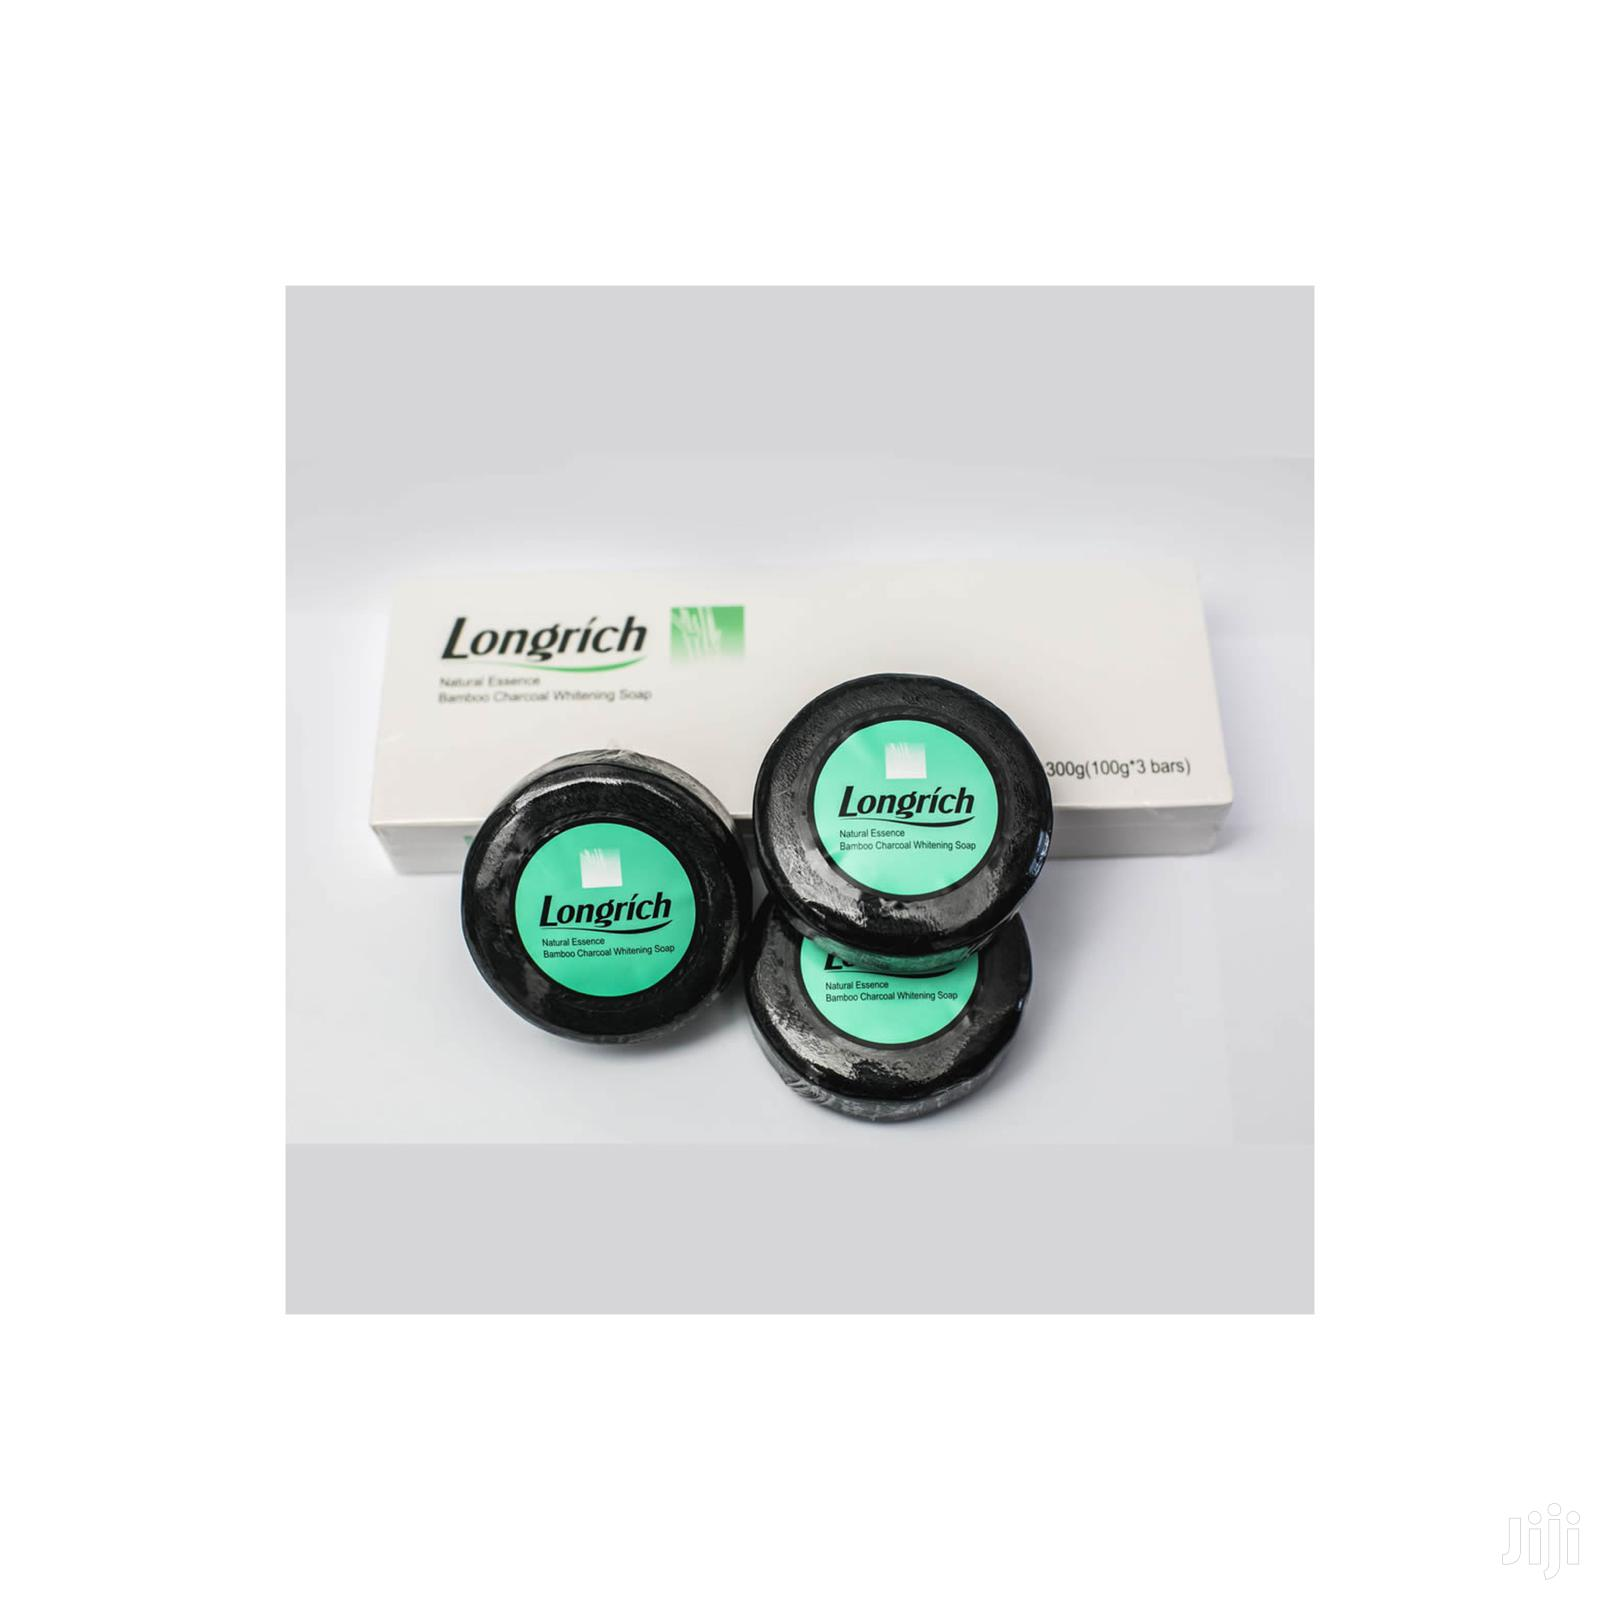 Archive: Longrich Bamboo Charcoal Whitening Soap